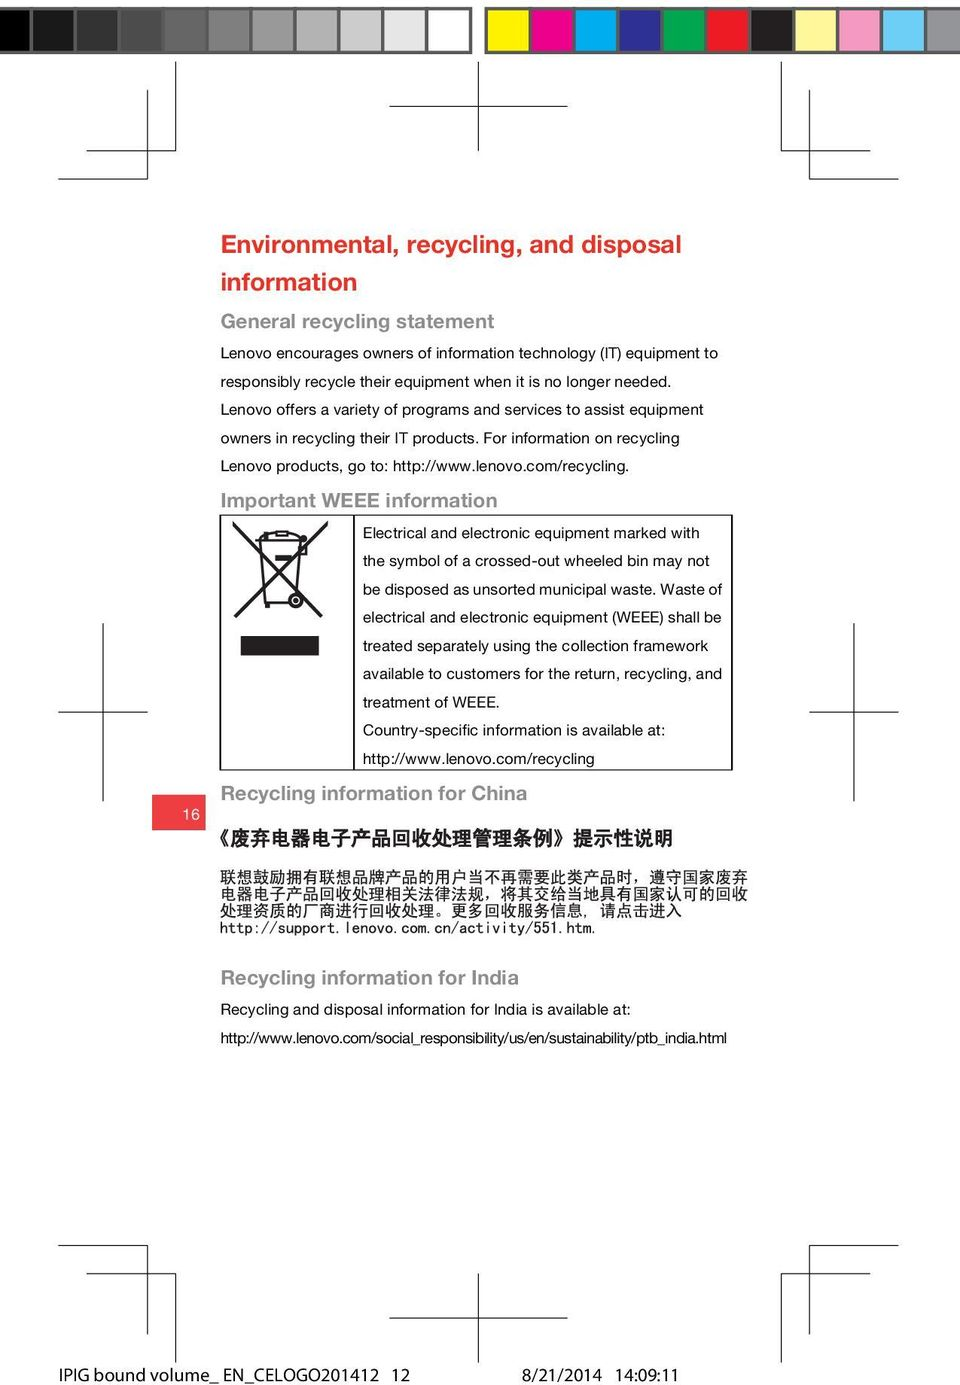 com/recycling. Important WEEE information Electrical and electronic equipment marked with the symbol of a crossed-out wheeled bin may not be disposed as unsorted municipal waste.